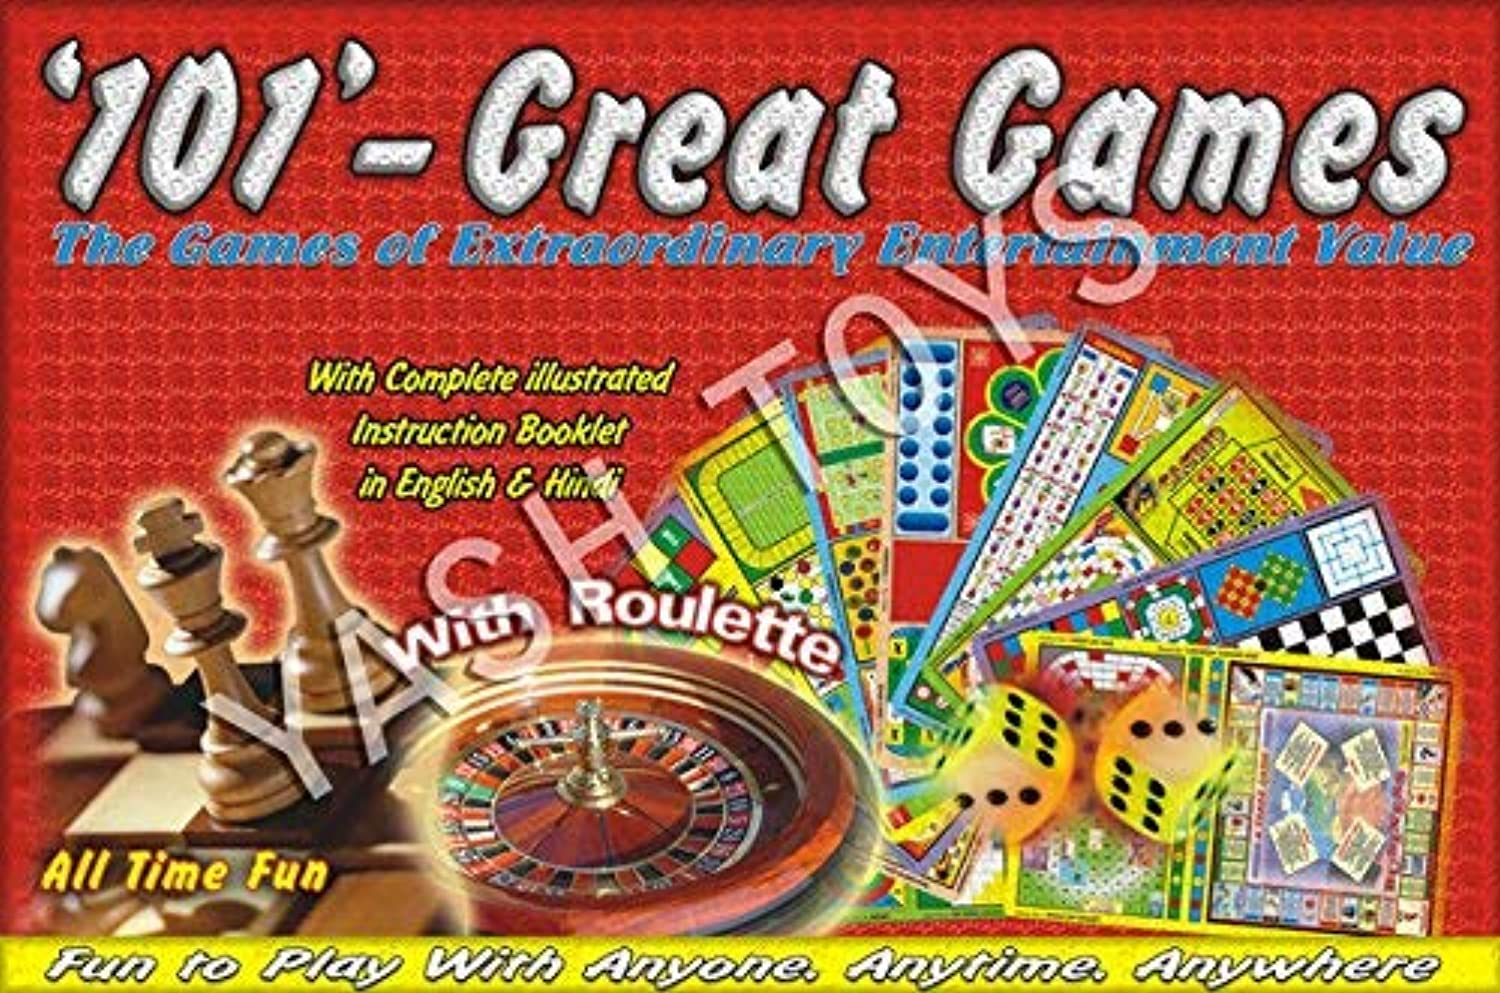 101Great Games The OF Extraoradunary Entertainment Value